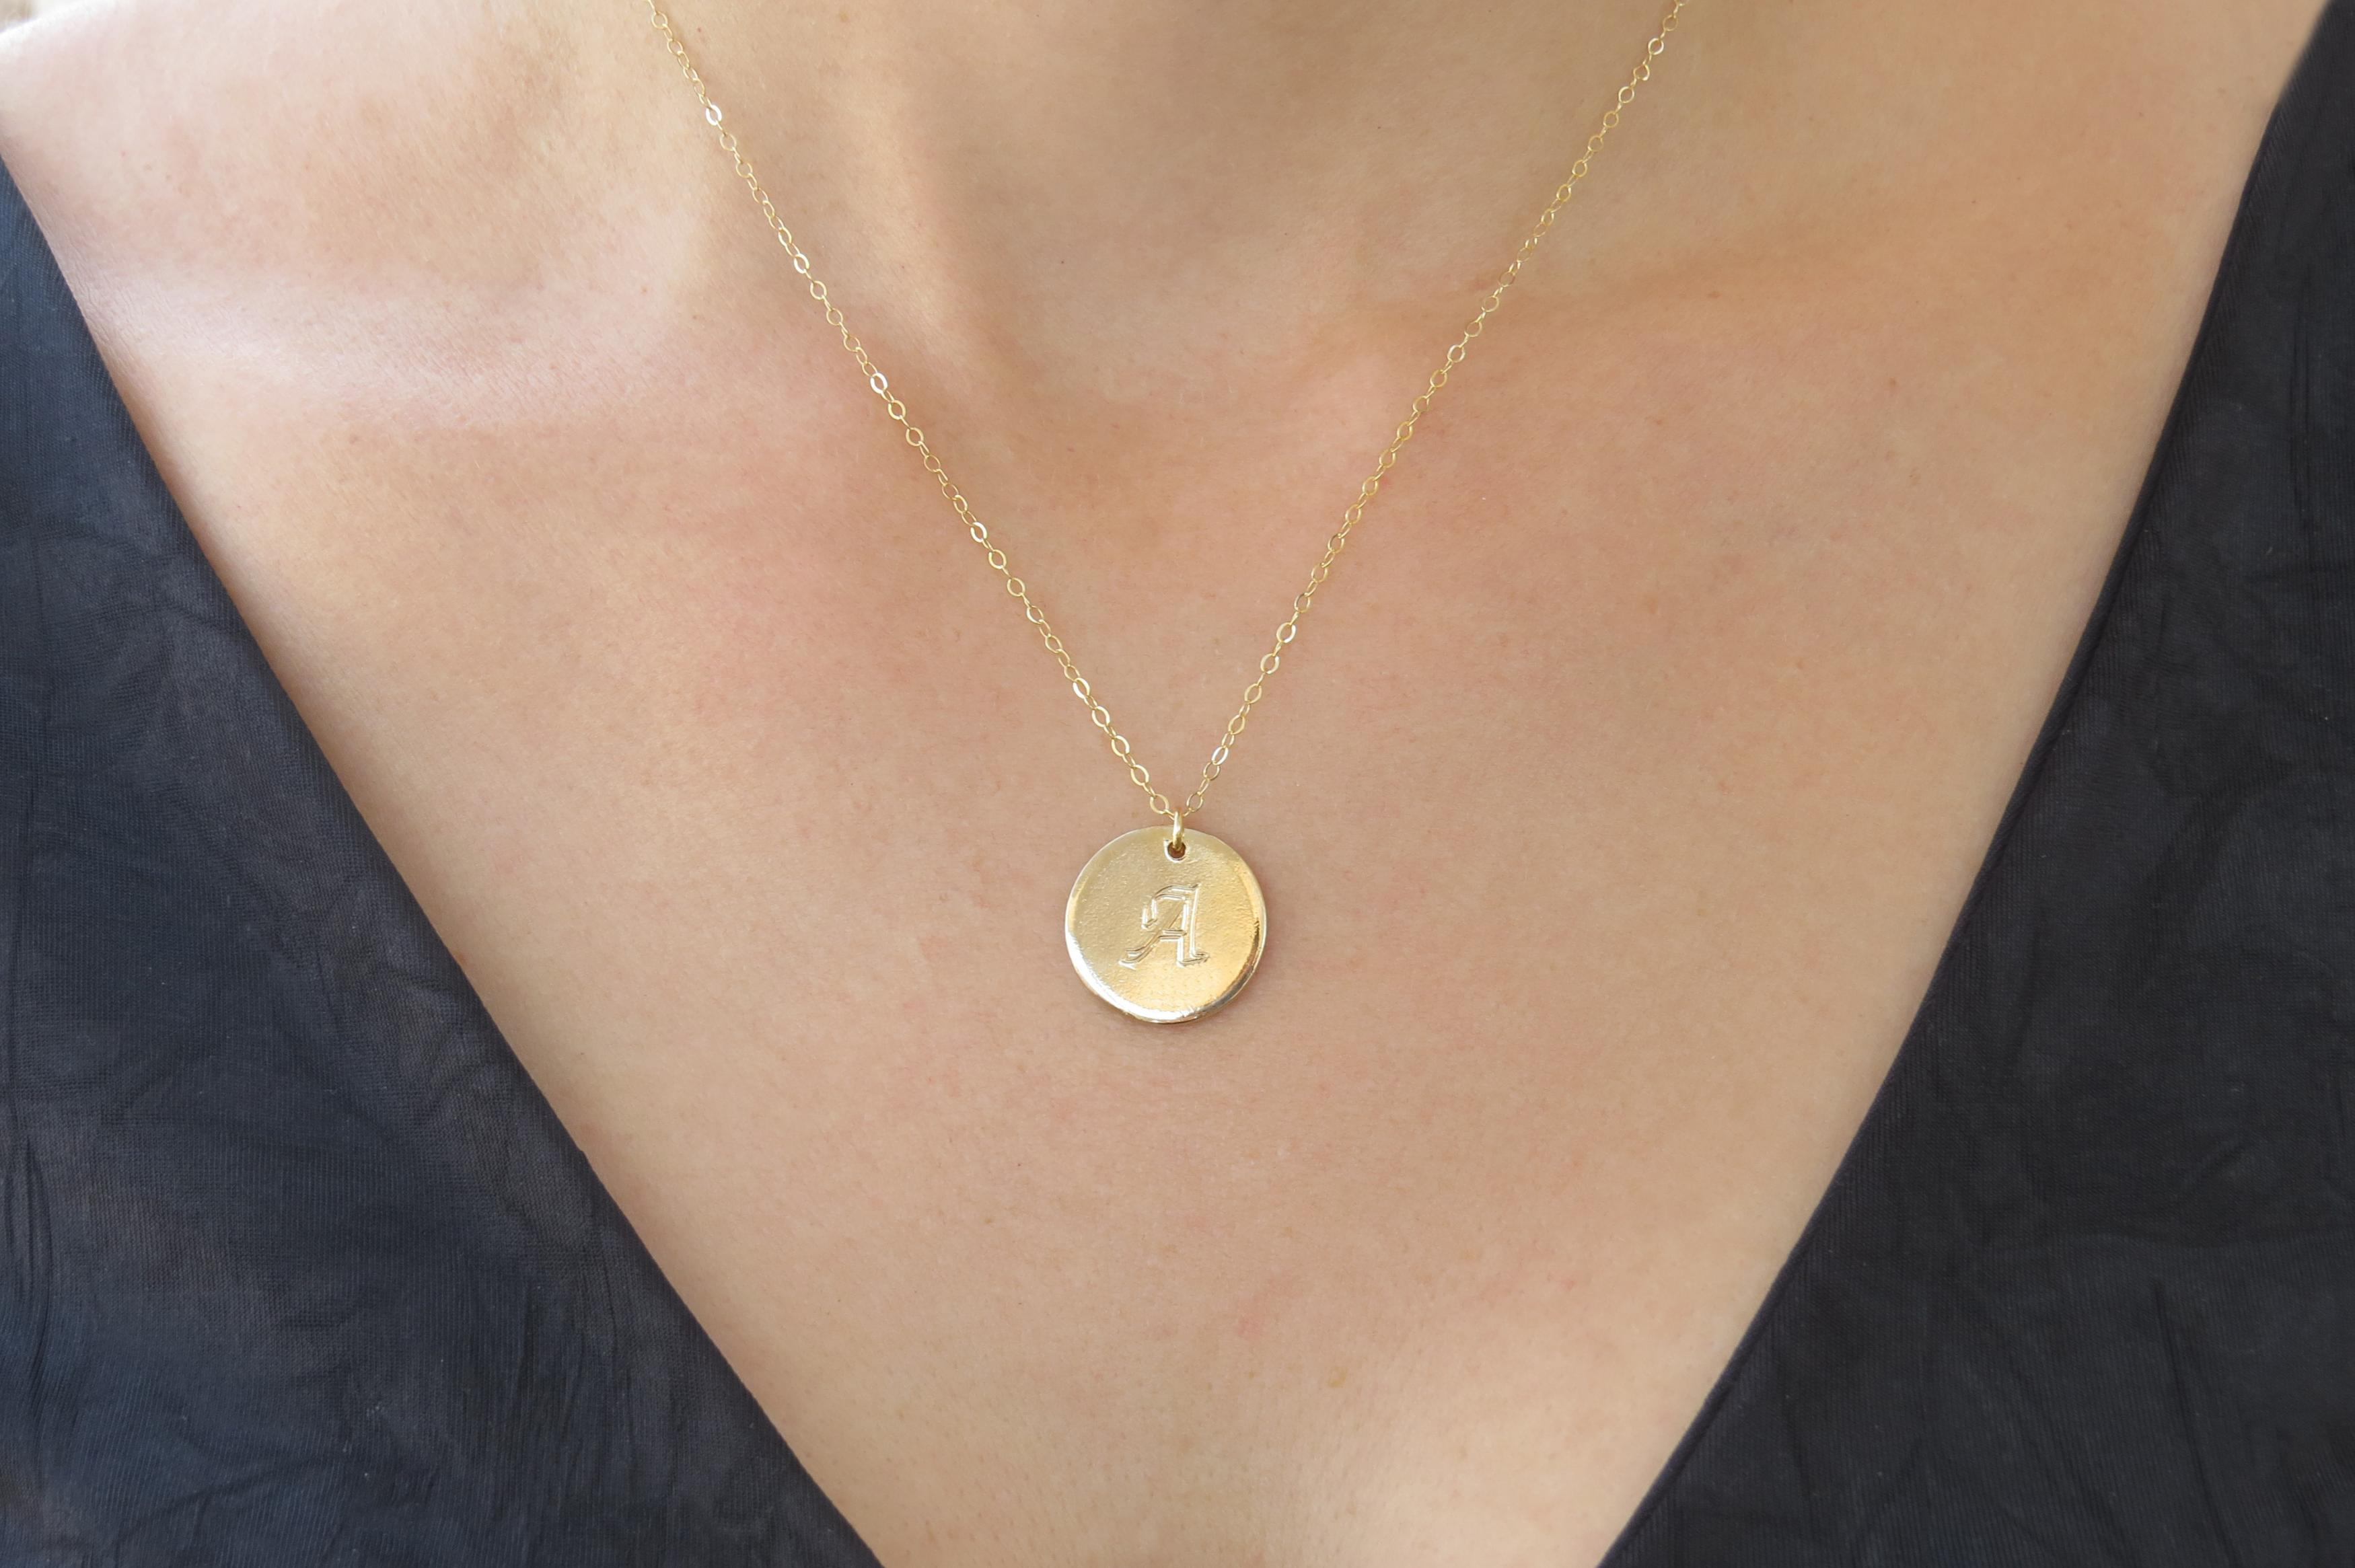 initial necklace gold necklace letter necklace gold disc necklace bridesmaid gift initial charm gold jewelry personalized necklace